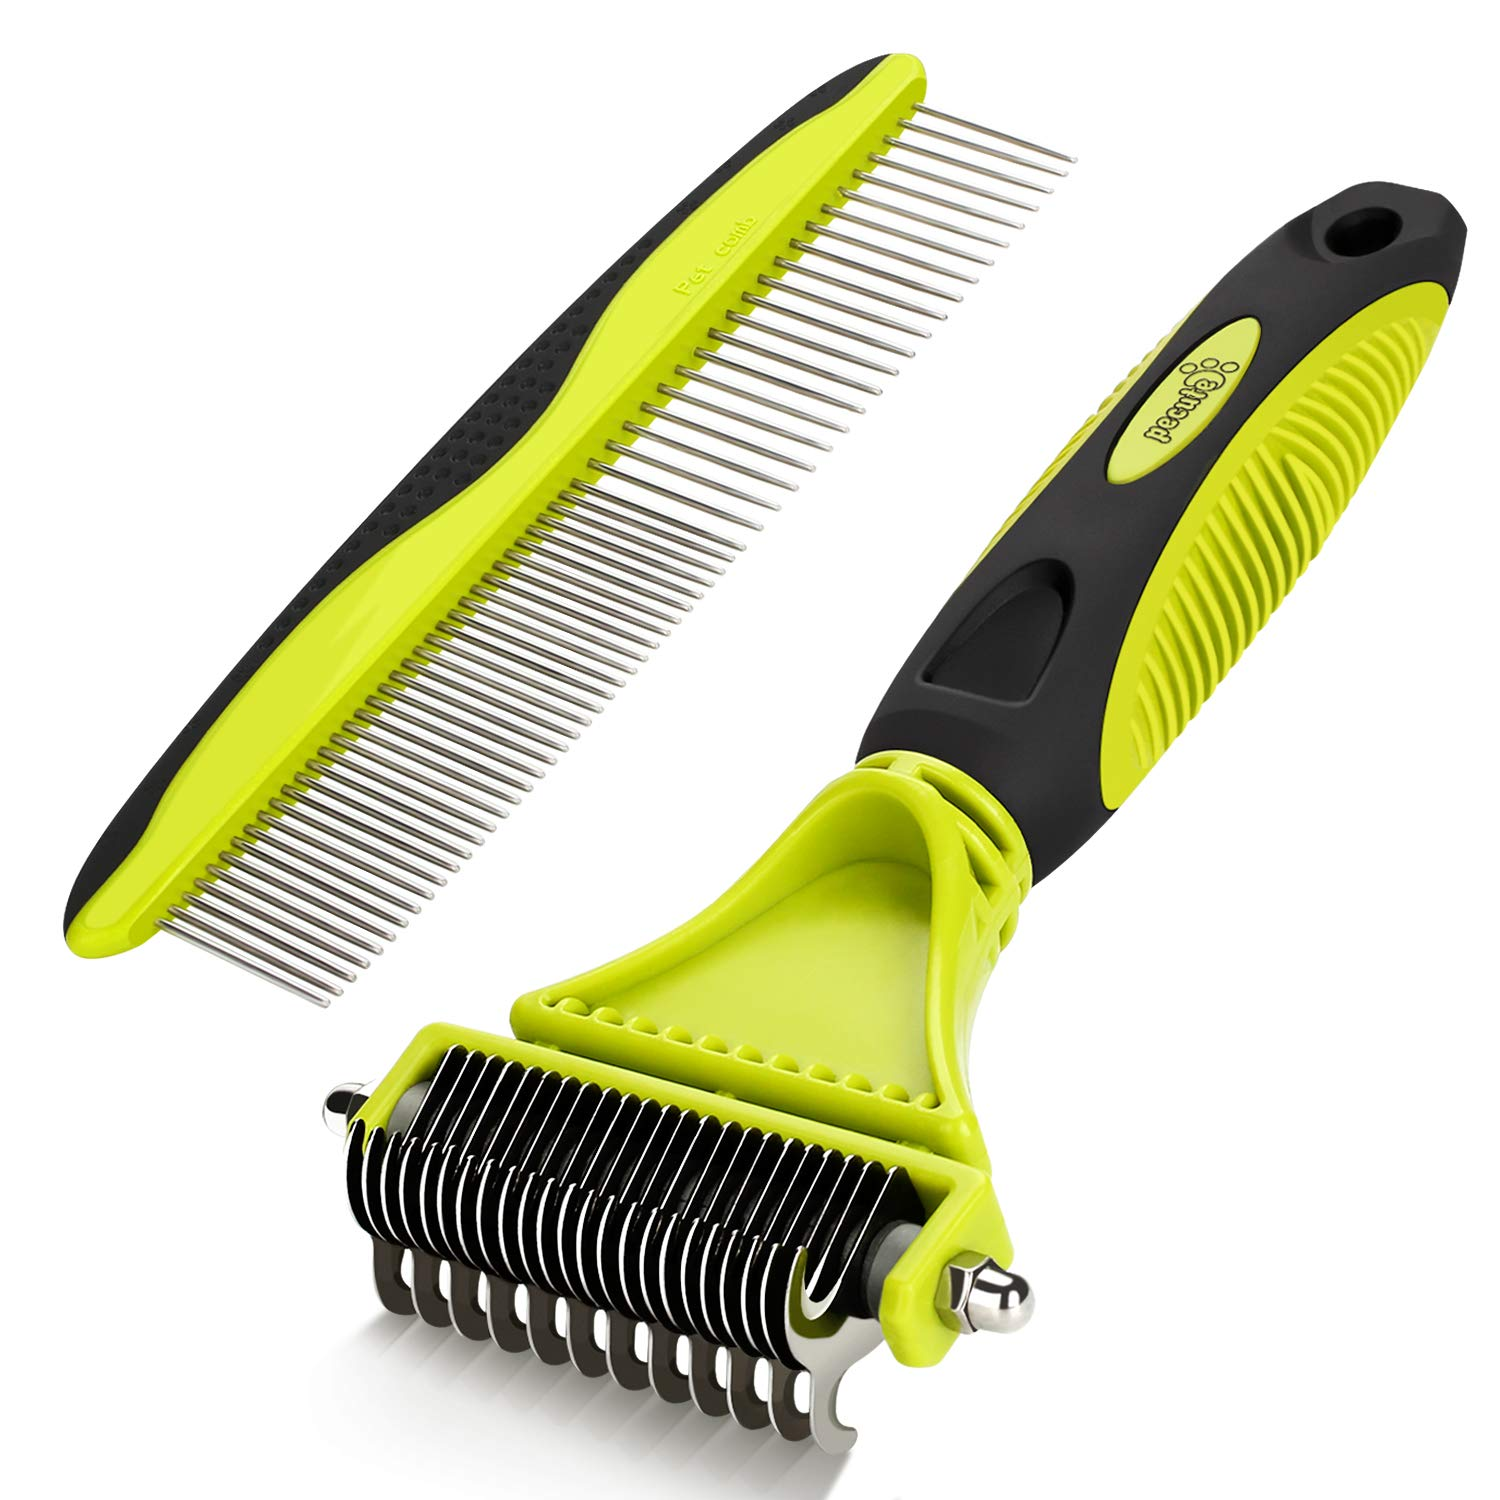 Pecute Dematting Comb Grooming Tool Kit for Dog & Cat Double Sided Blade Rake Comb with Grooming Brush by Pecute